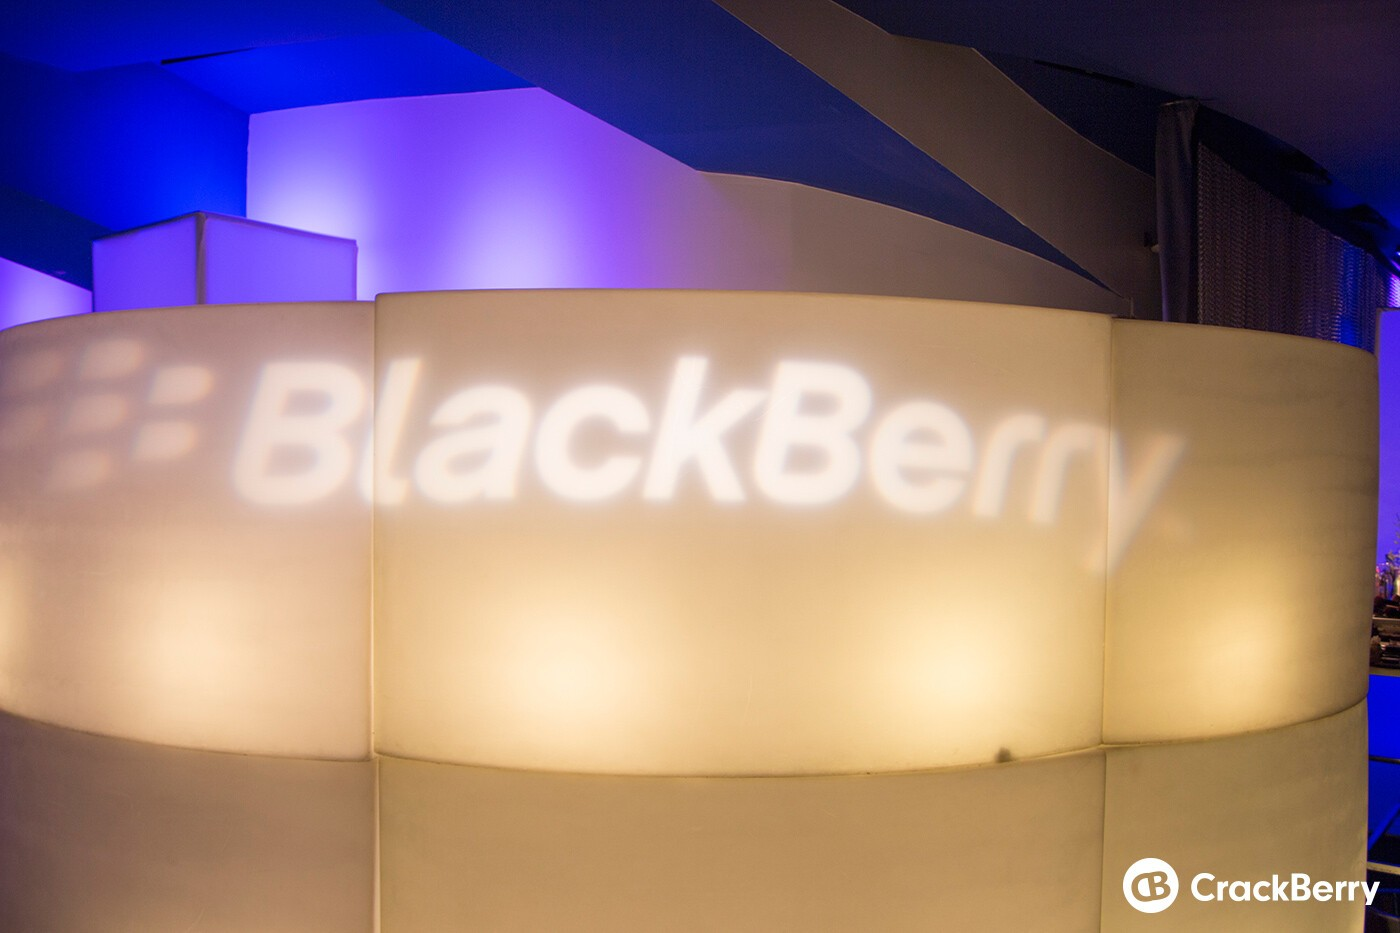 BlackBerry is on the cusp of returning as a growth company